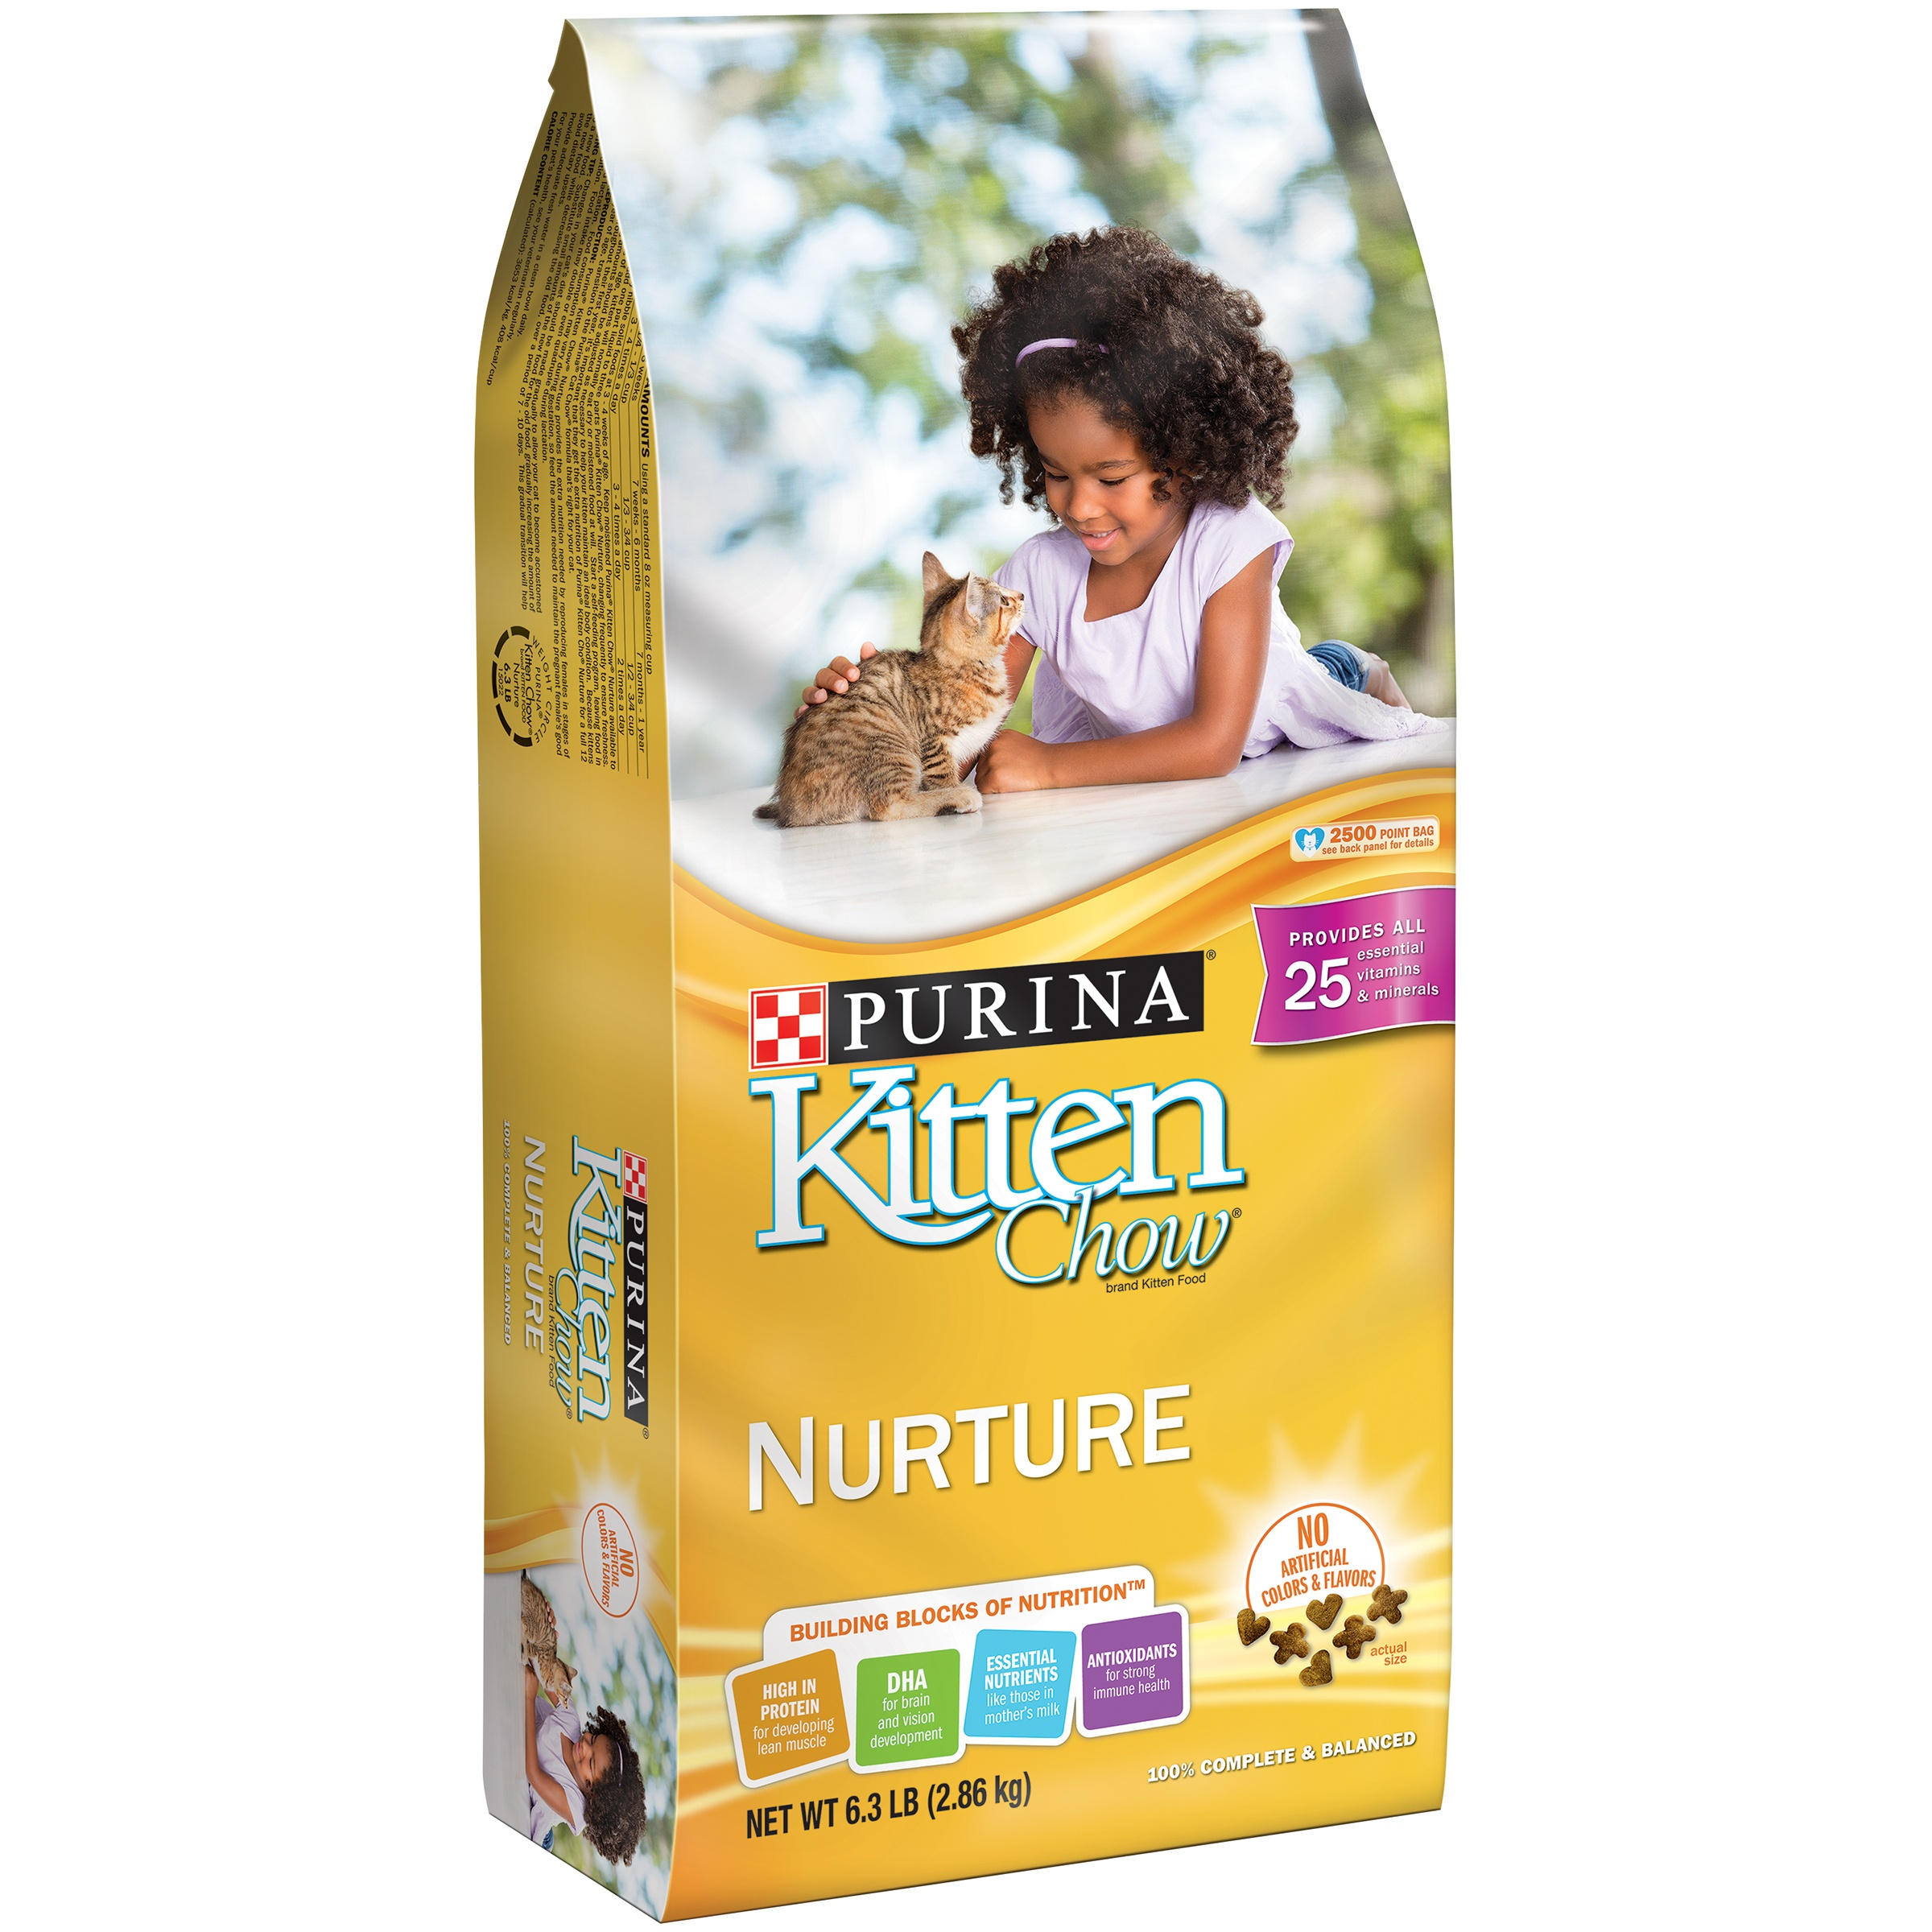 Purina Kitten Chow Nurture Dry Cat Food, 6.3 Lb